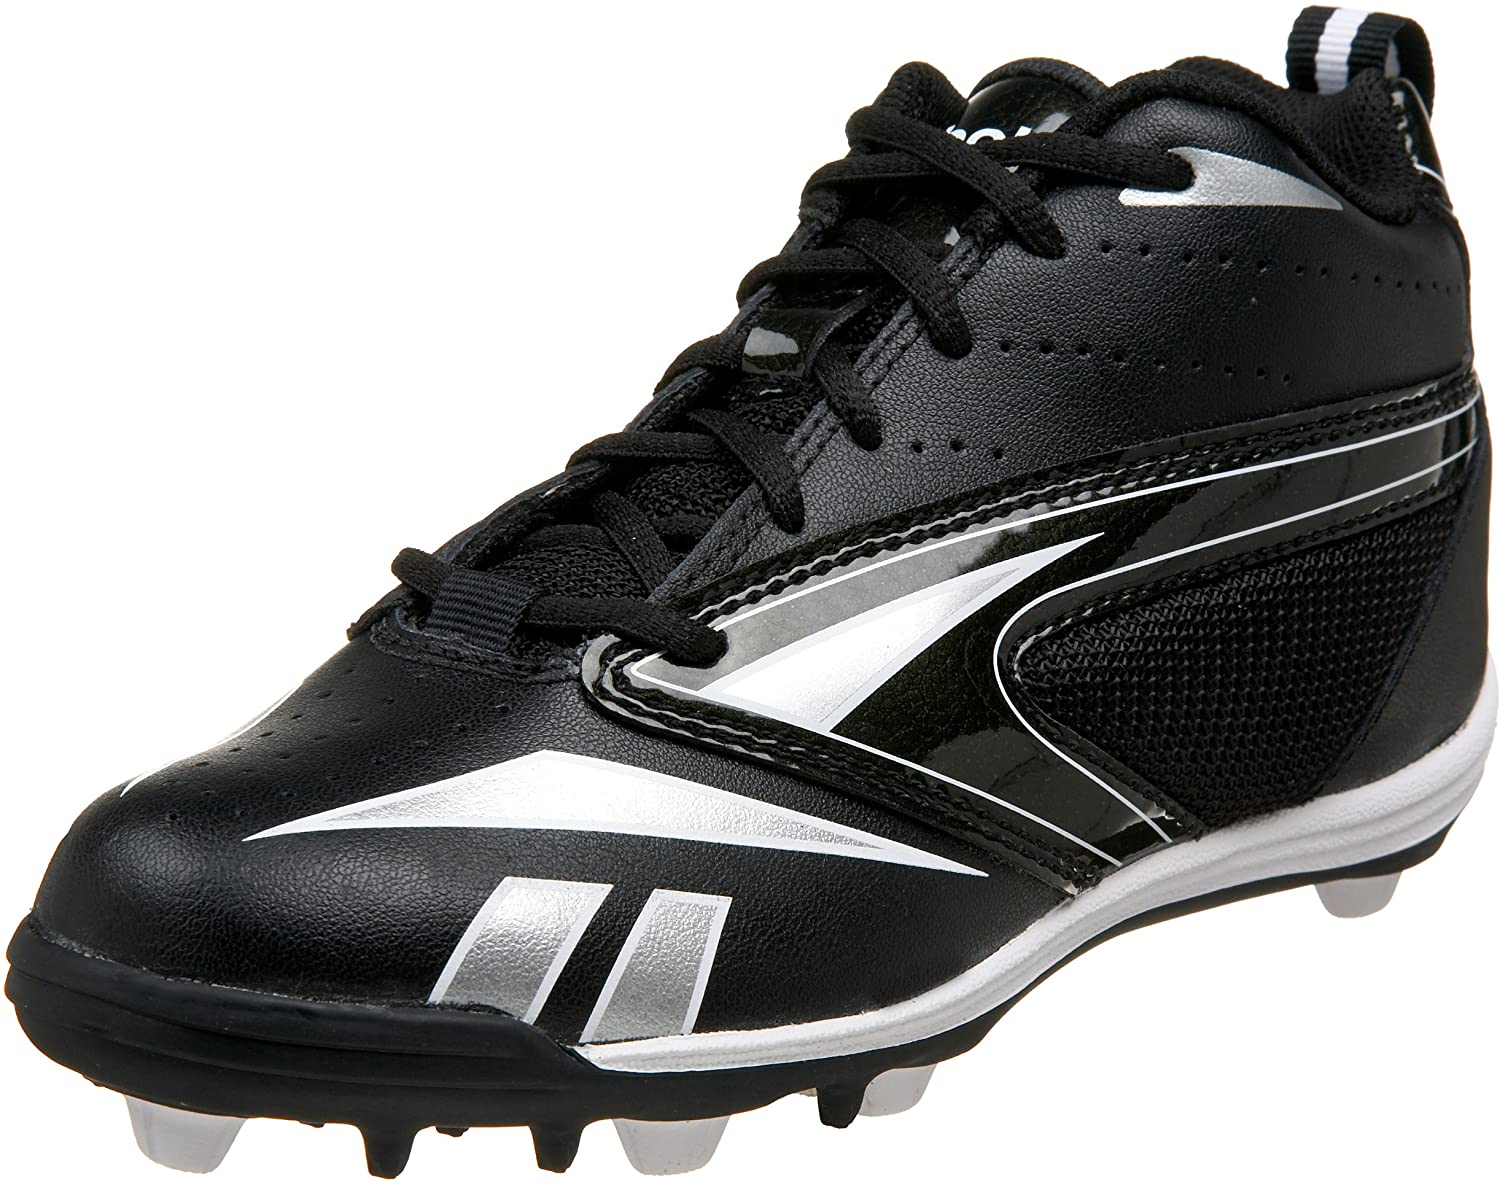 Reebok Little Kid/Big Kid Jr. Audible Iii Mr7 Football Shoe